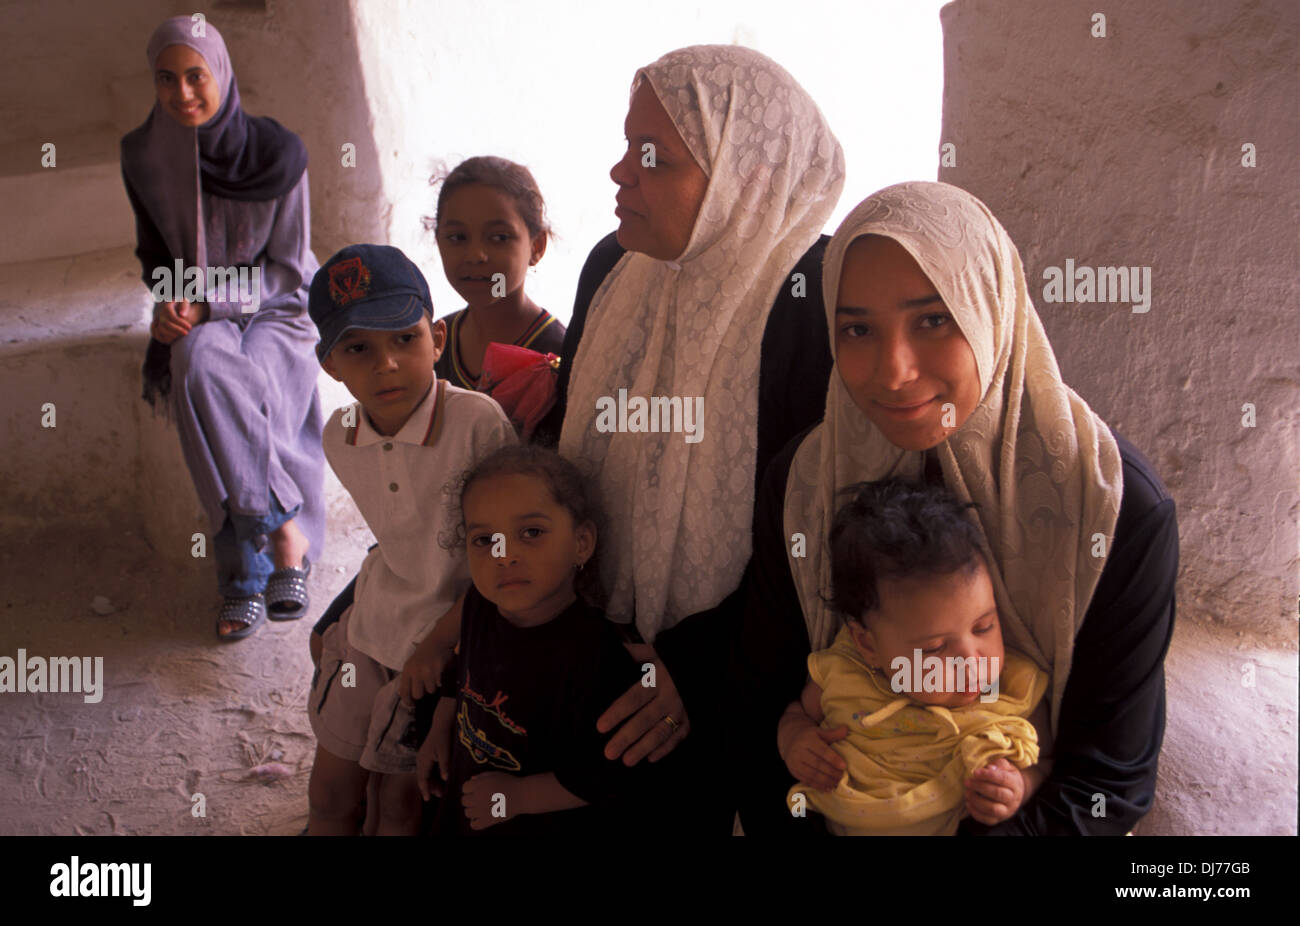 family-mother-and-her-children-having-a-